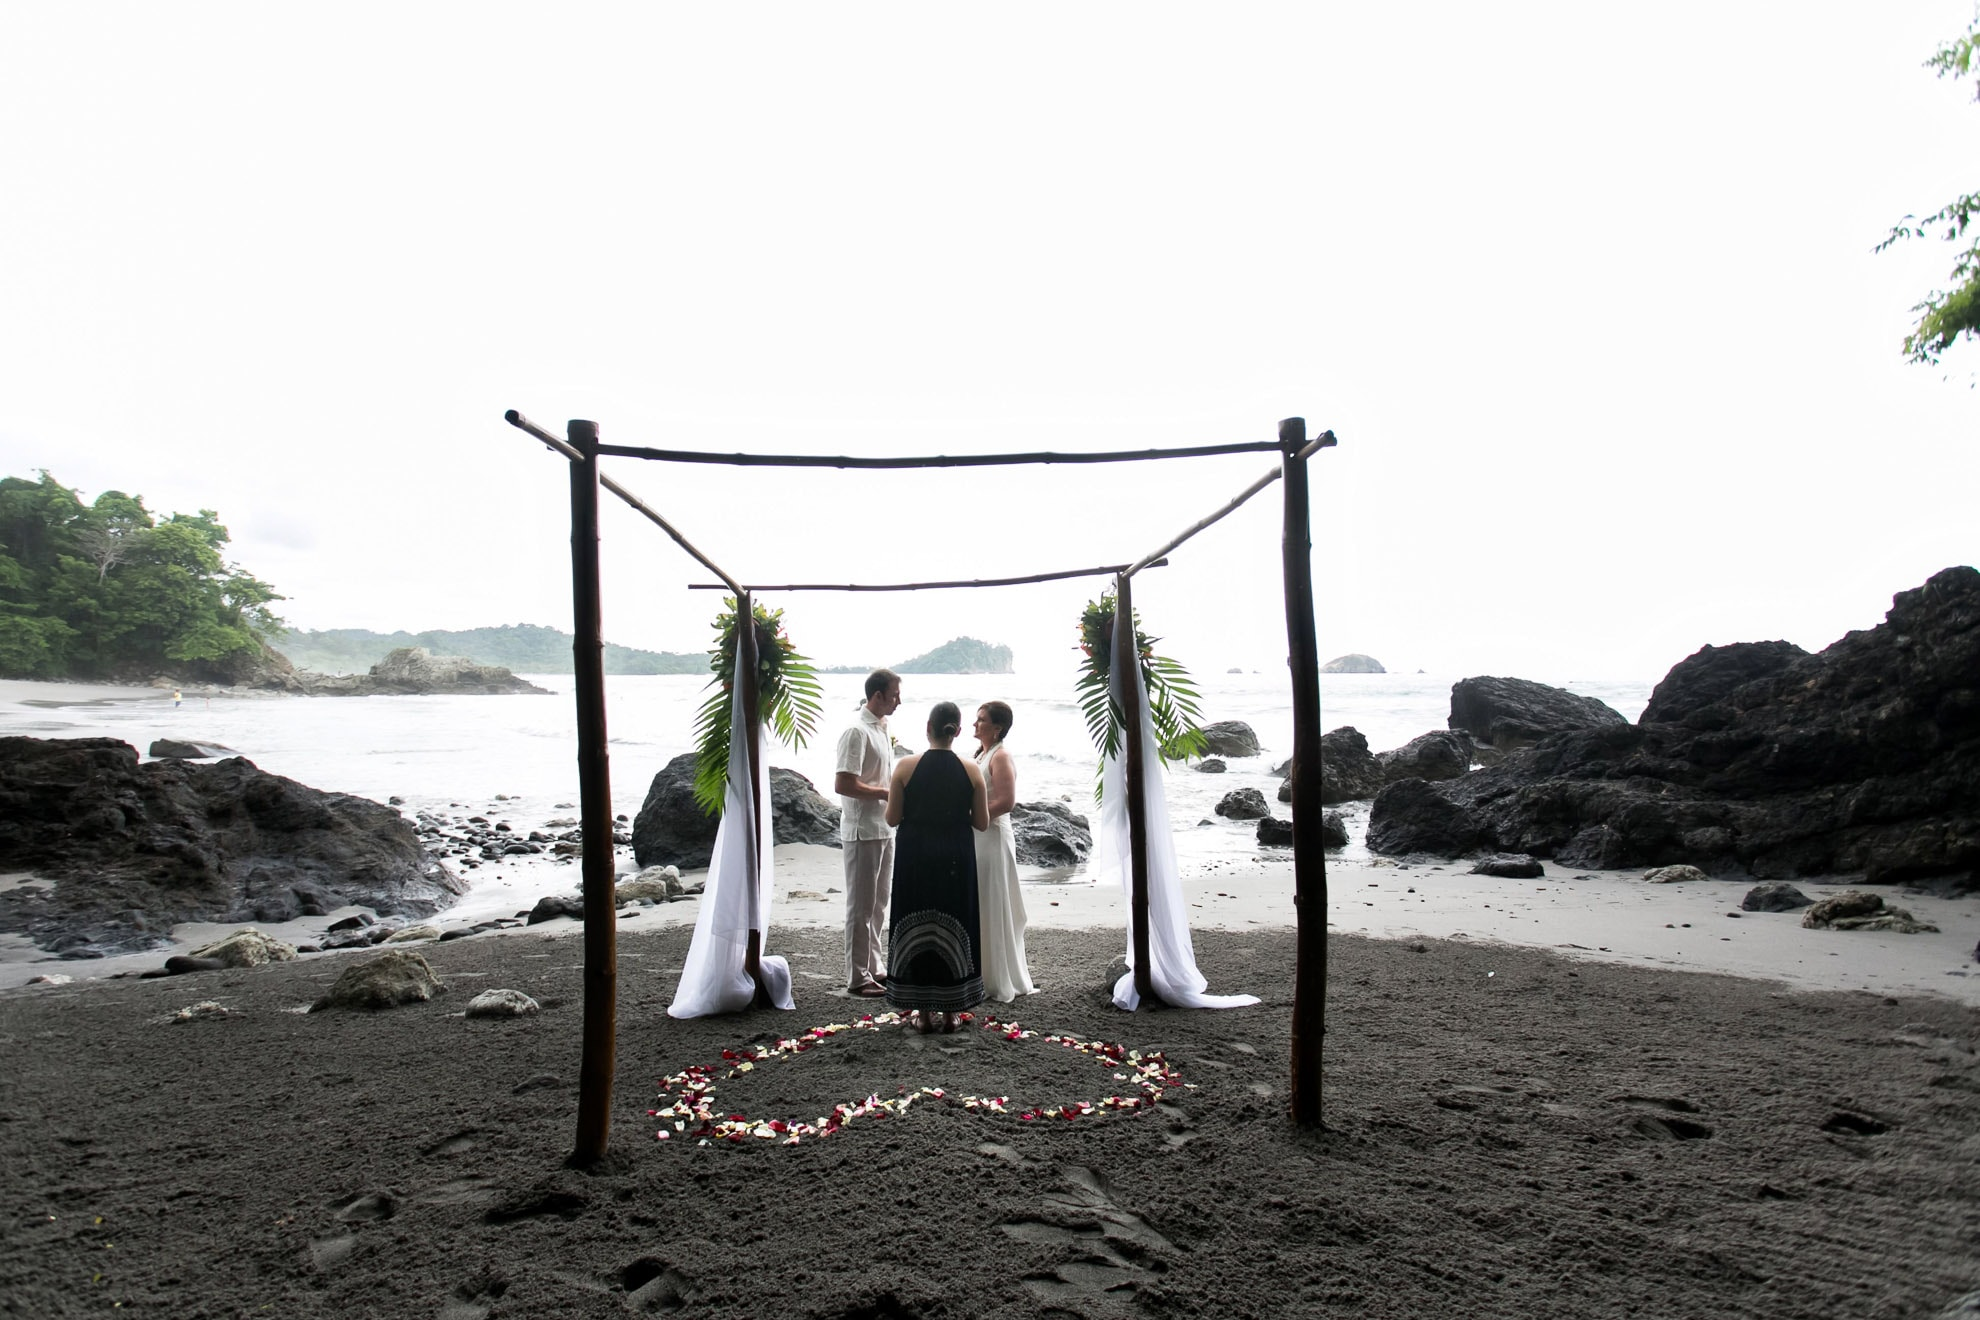 Wedding on beach in Costa Rica. The best place to elope!